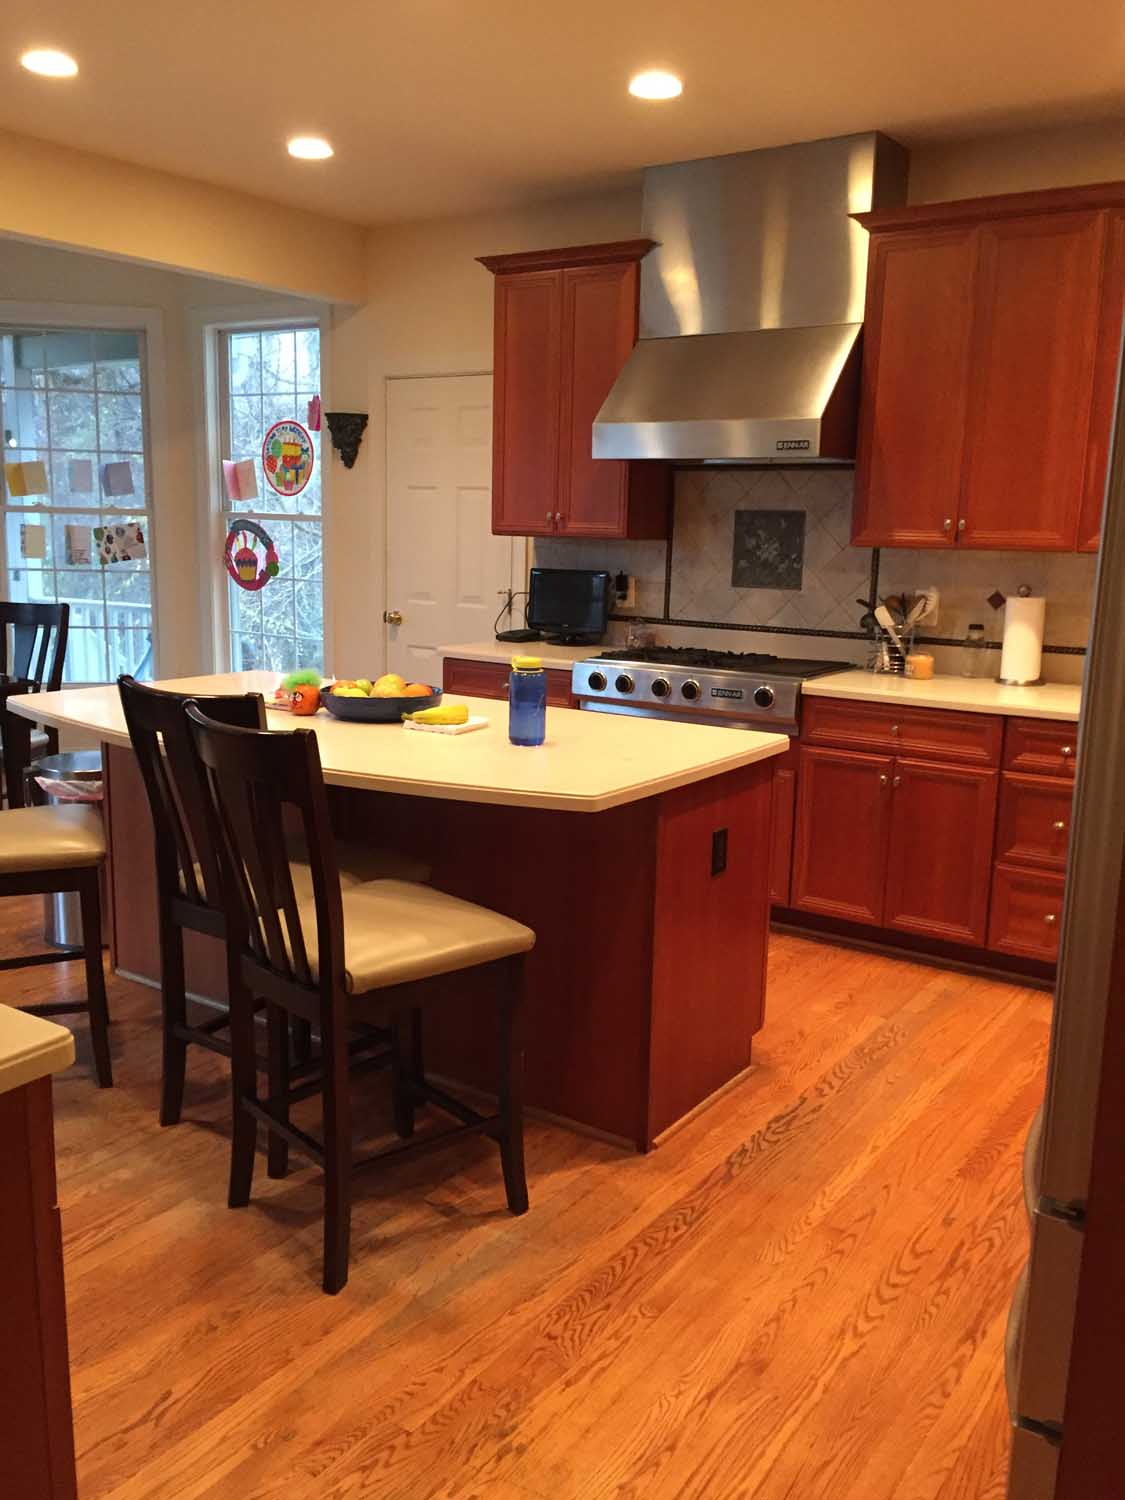 Howard County Maryland Transitional Kitchen Remodel Before 1 – Designer Bestie April Force Pardoe Interiors.jpg